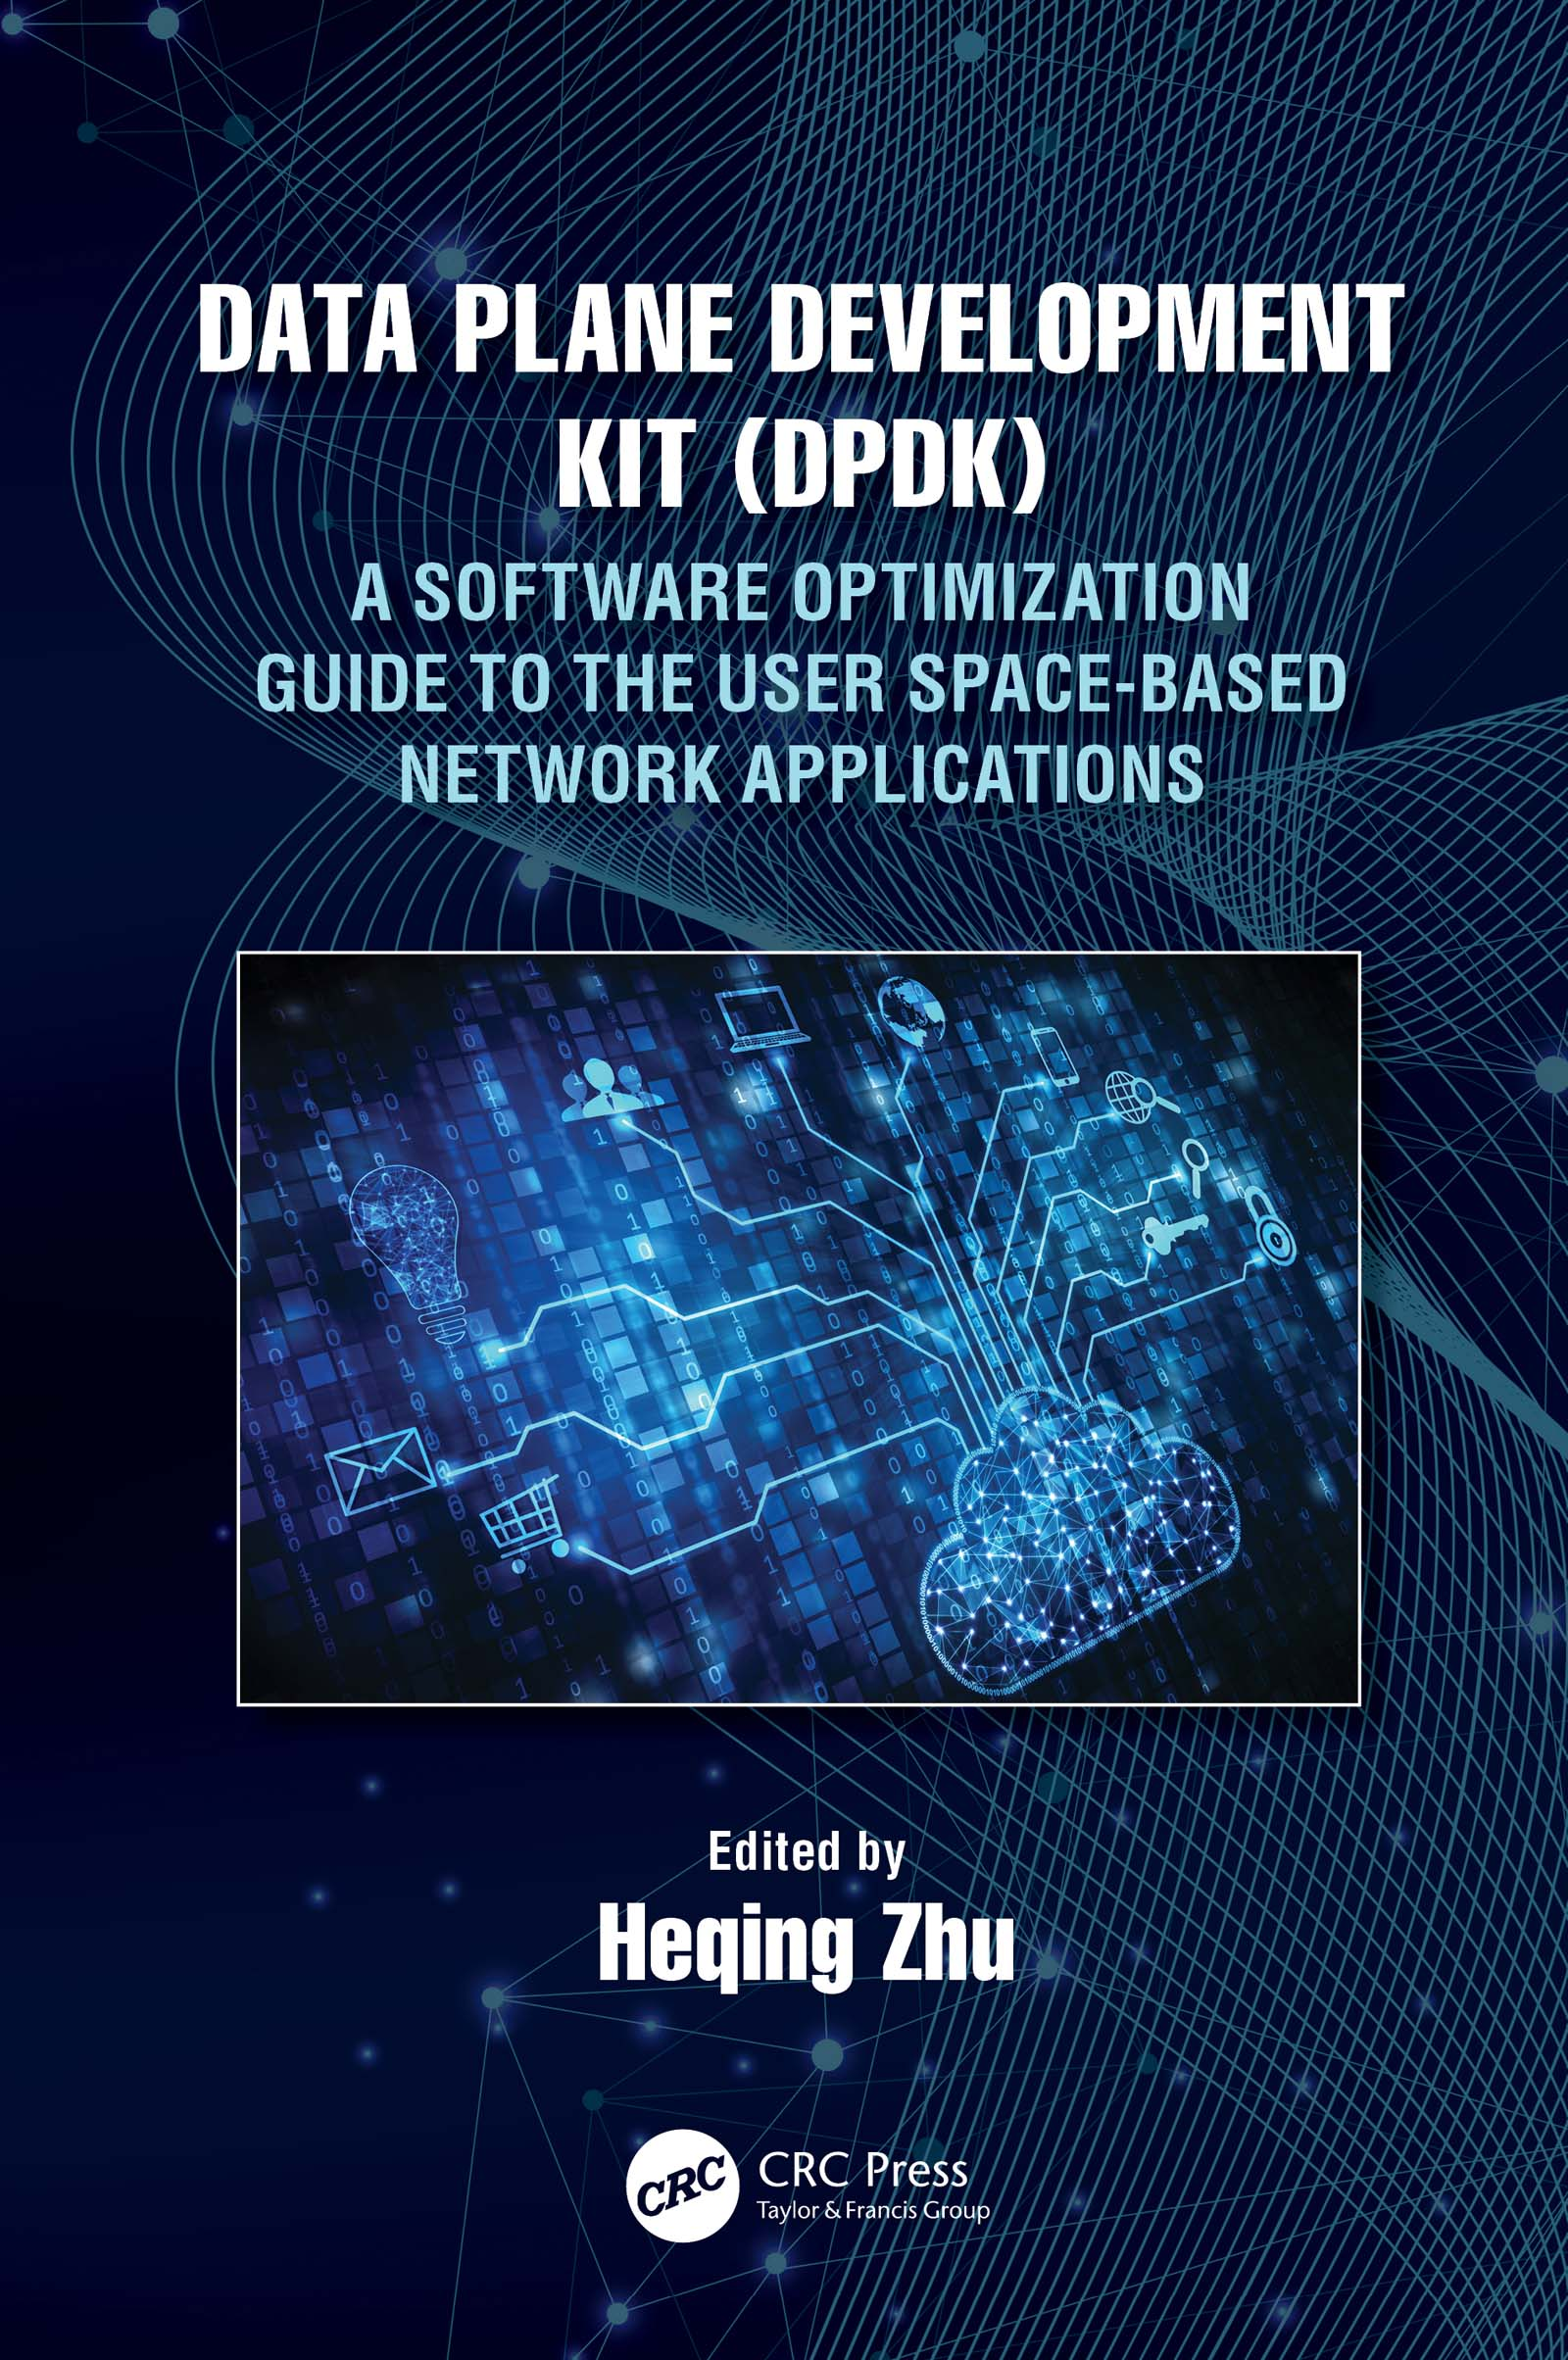 DPDK for NFV